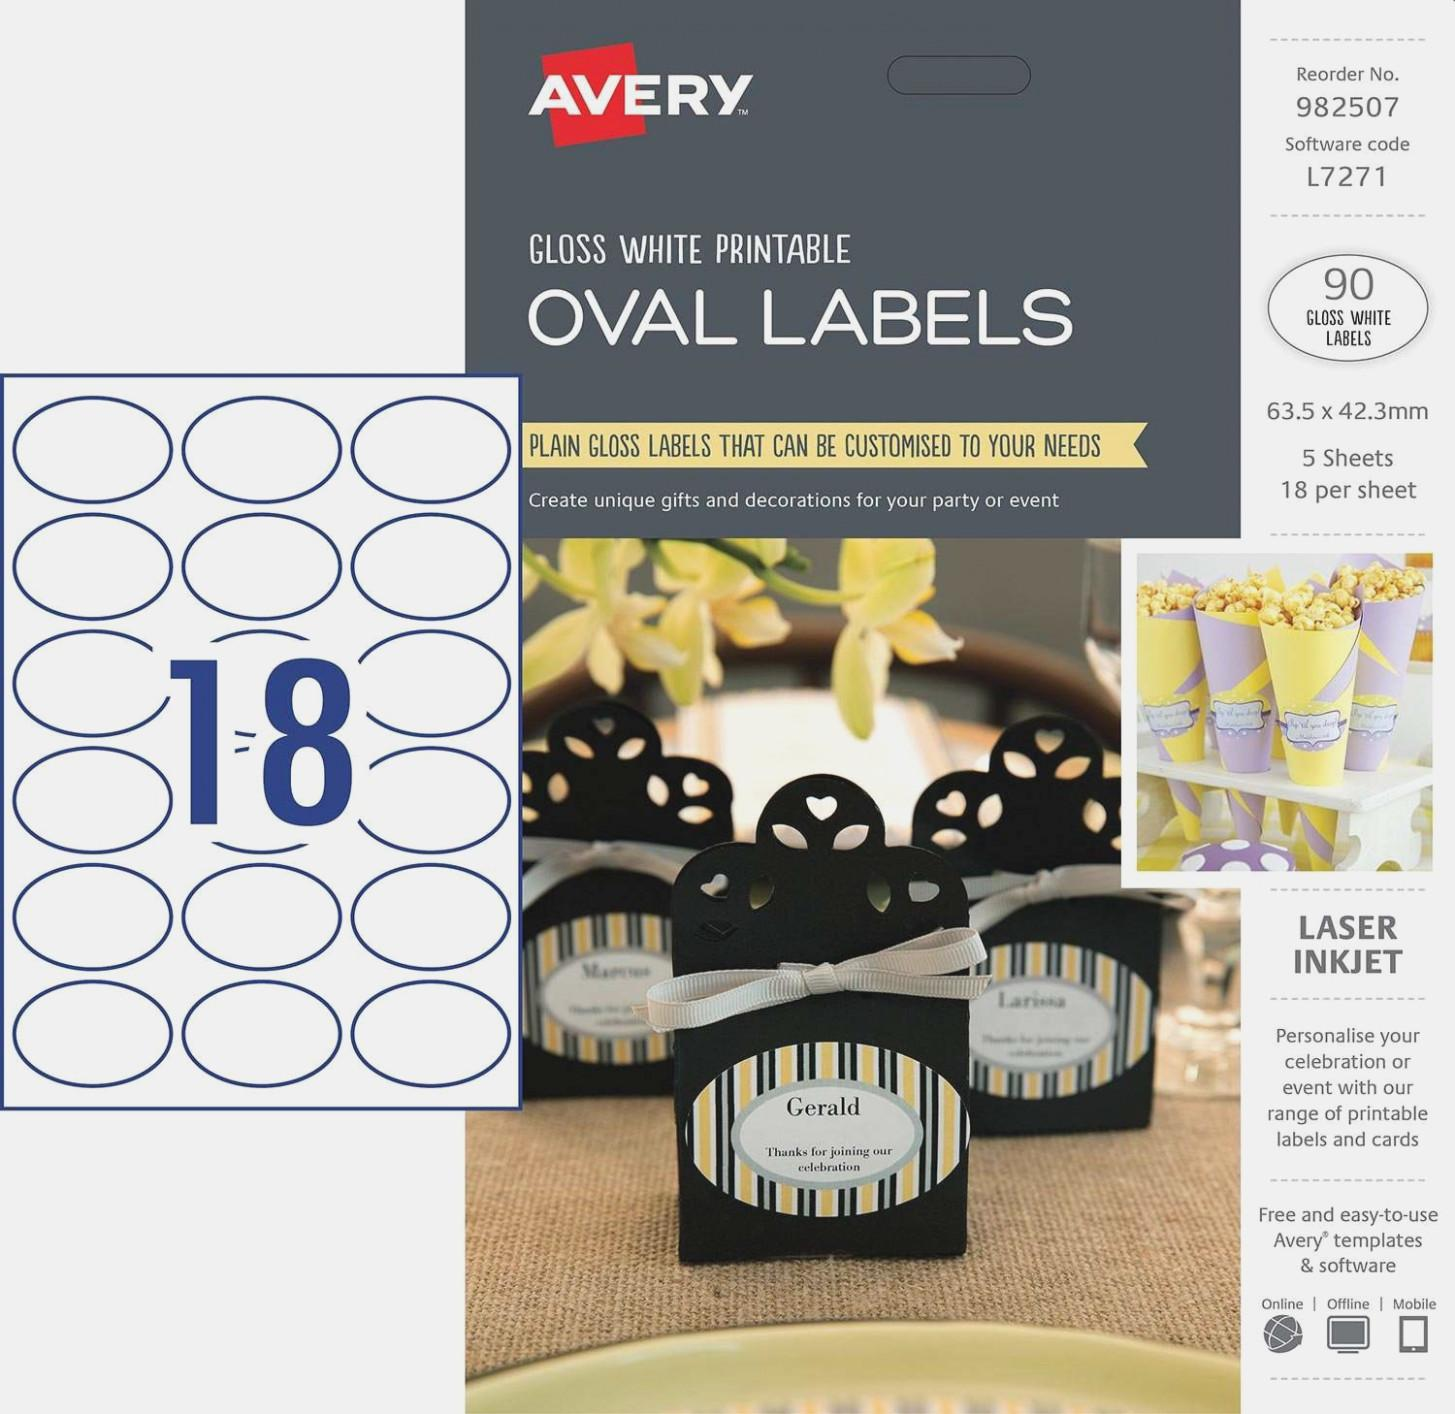 Avery Oval Label Template